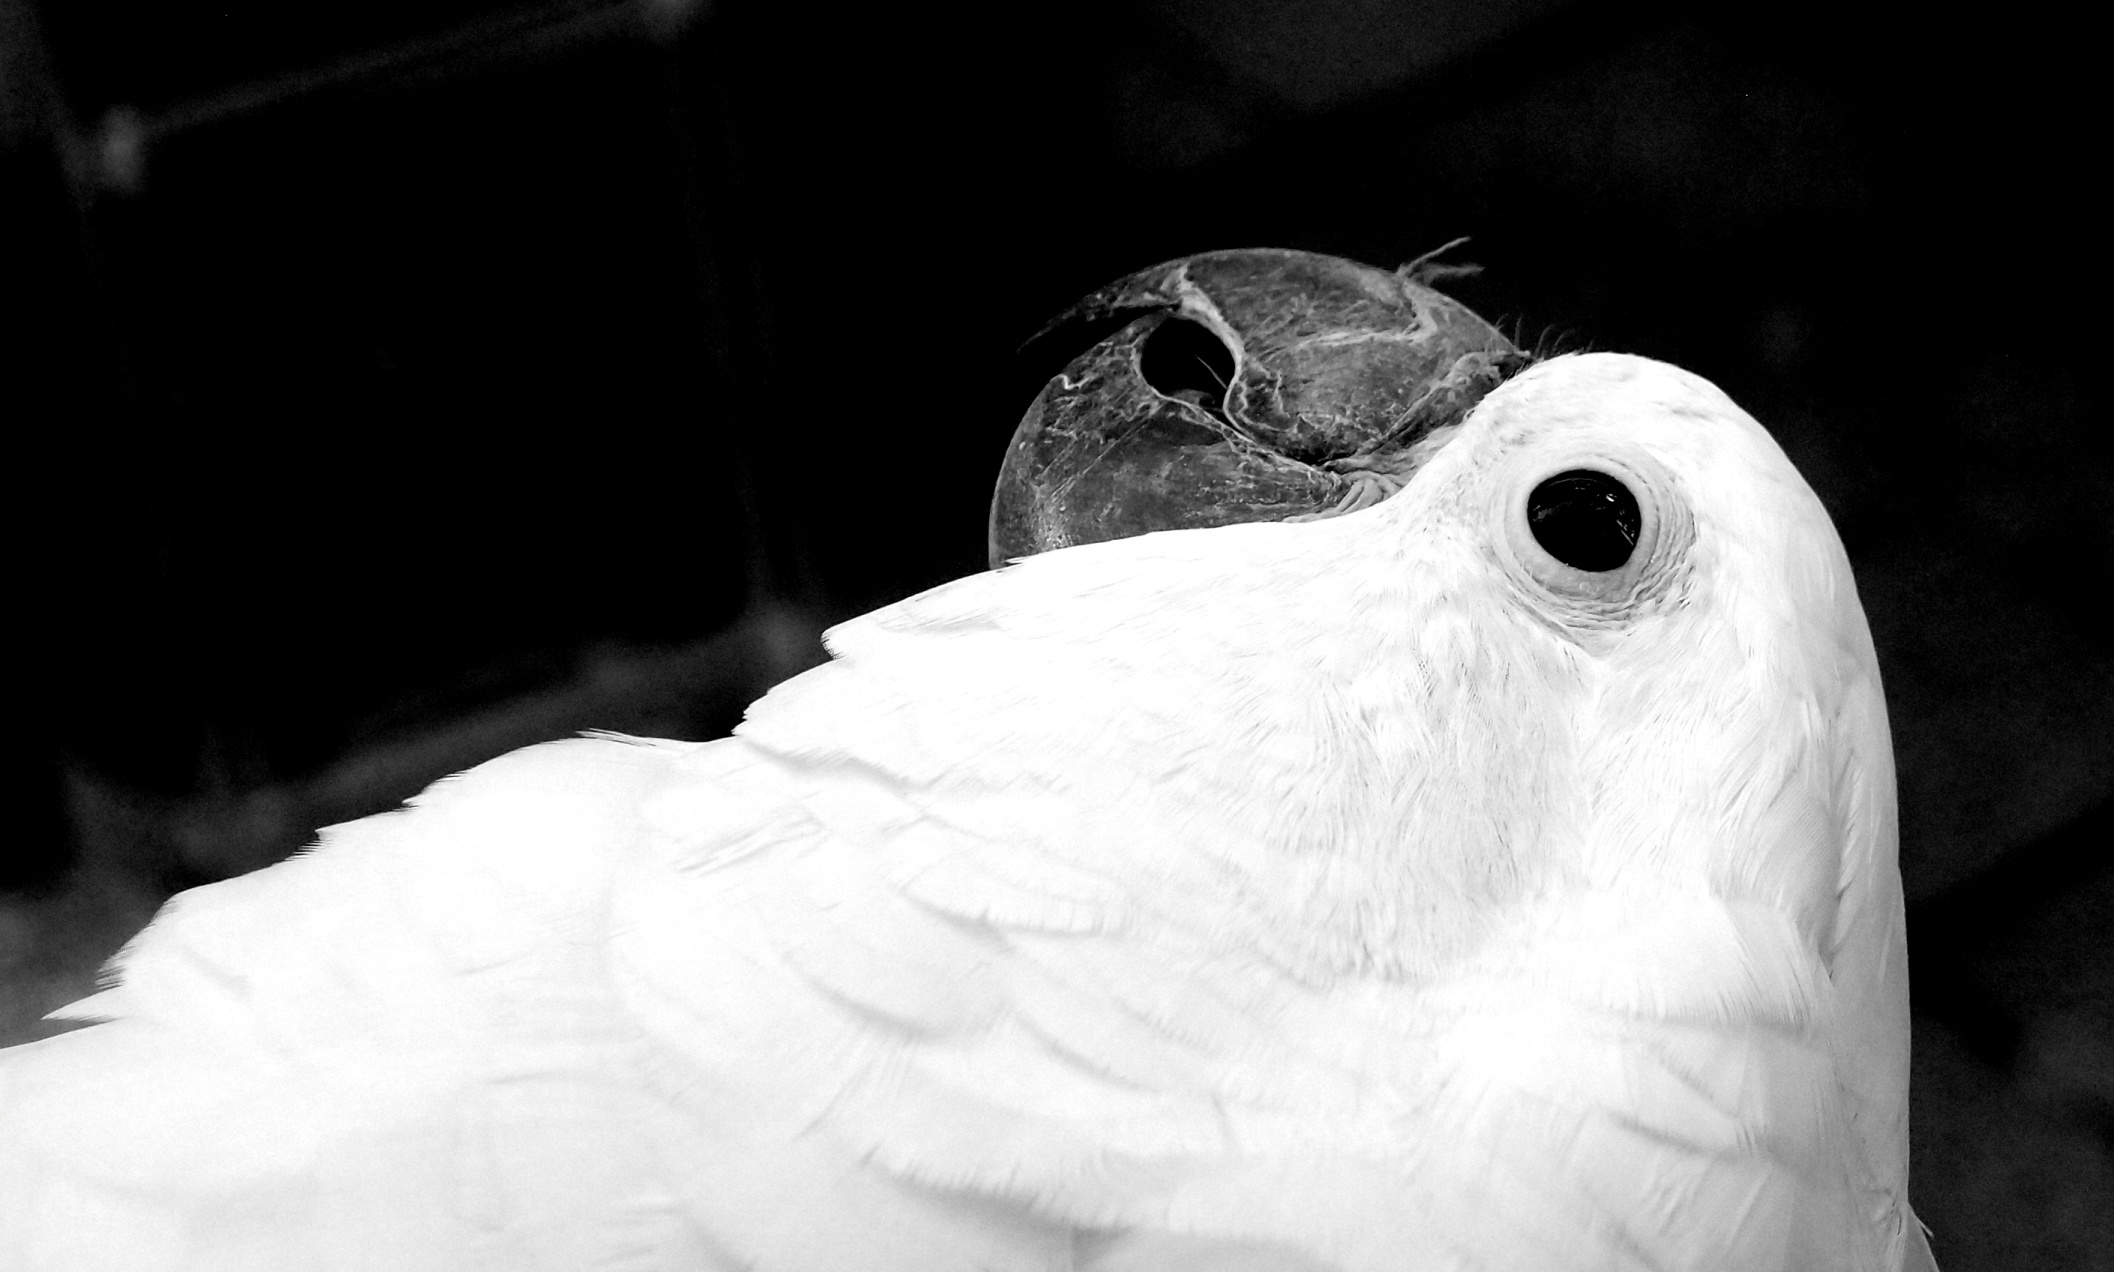 The creepy birds at the Yuen Po Street Bird Market